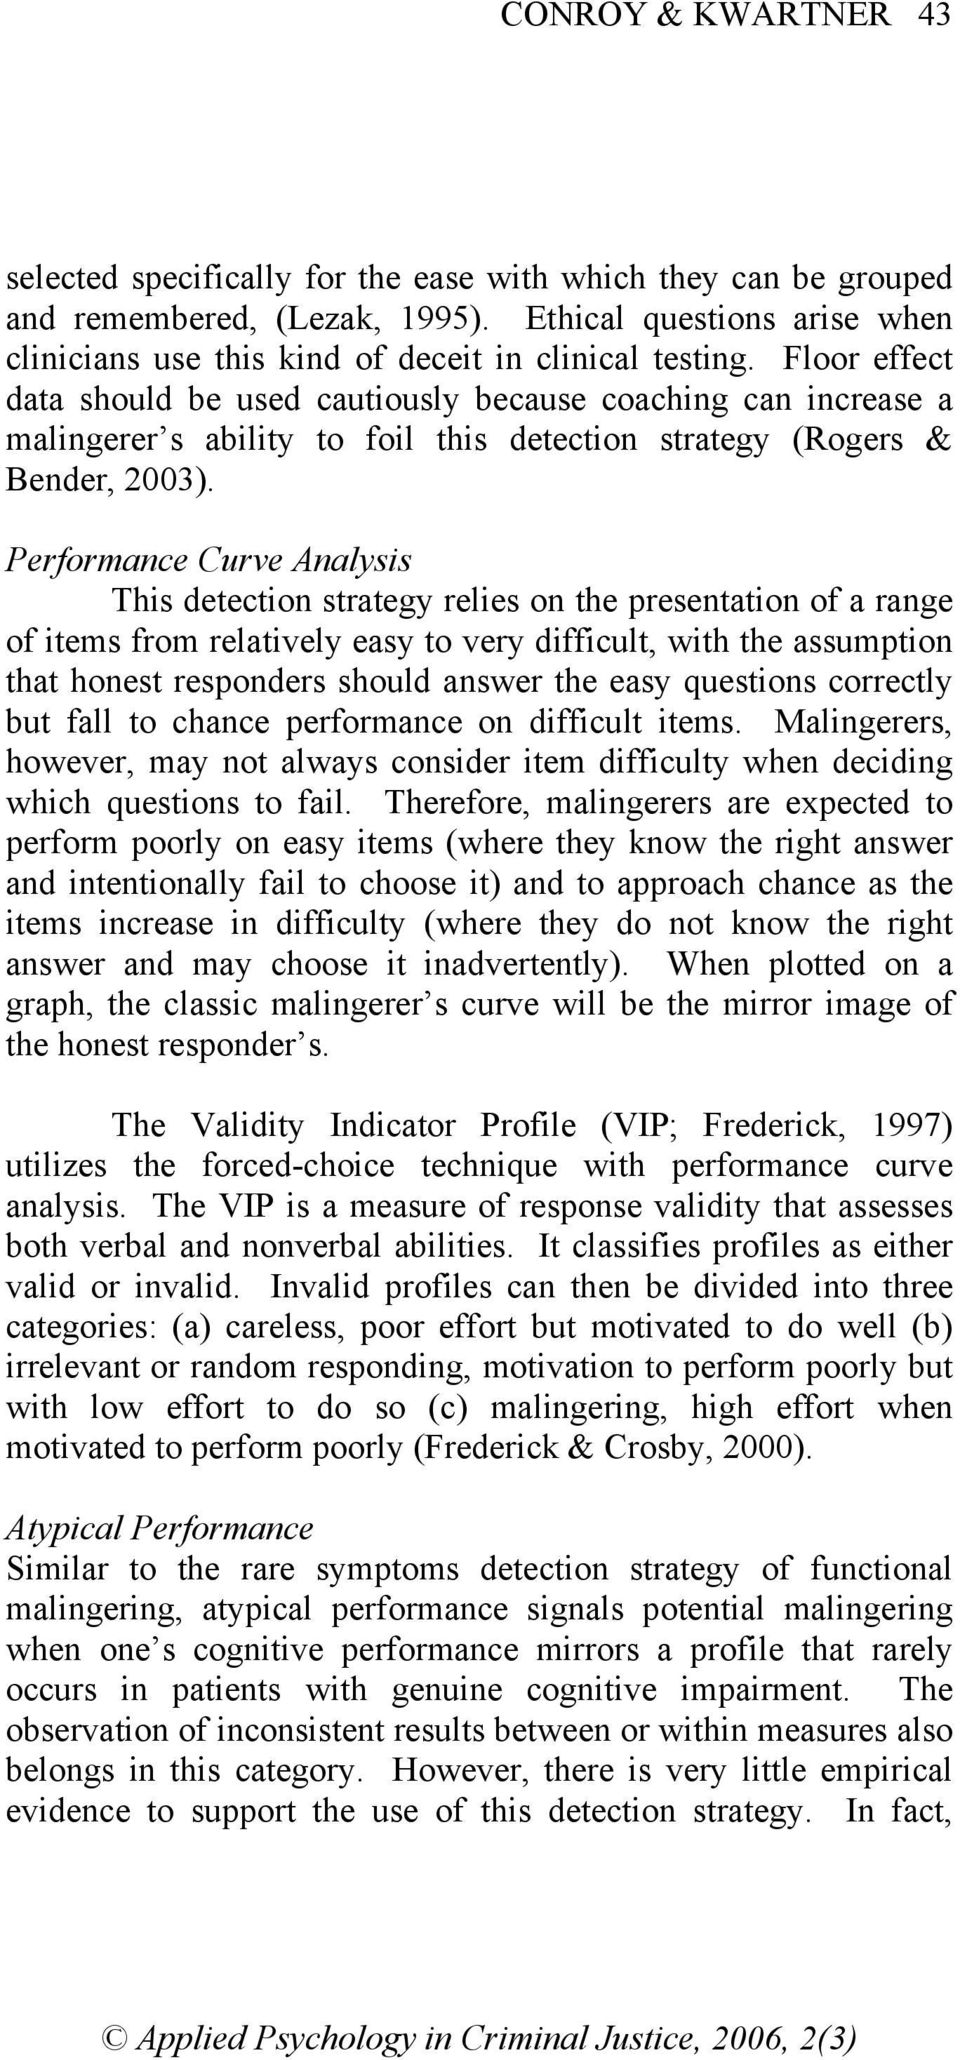 Floor effect data should be used cautiously because coaching can increase a malingerer s ability to foil this detection strategy (Rogers & Bender, 2003).